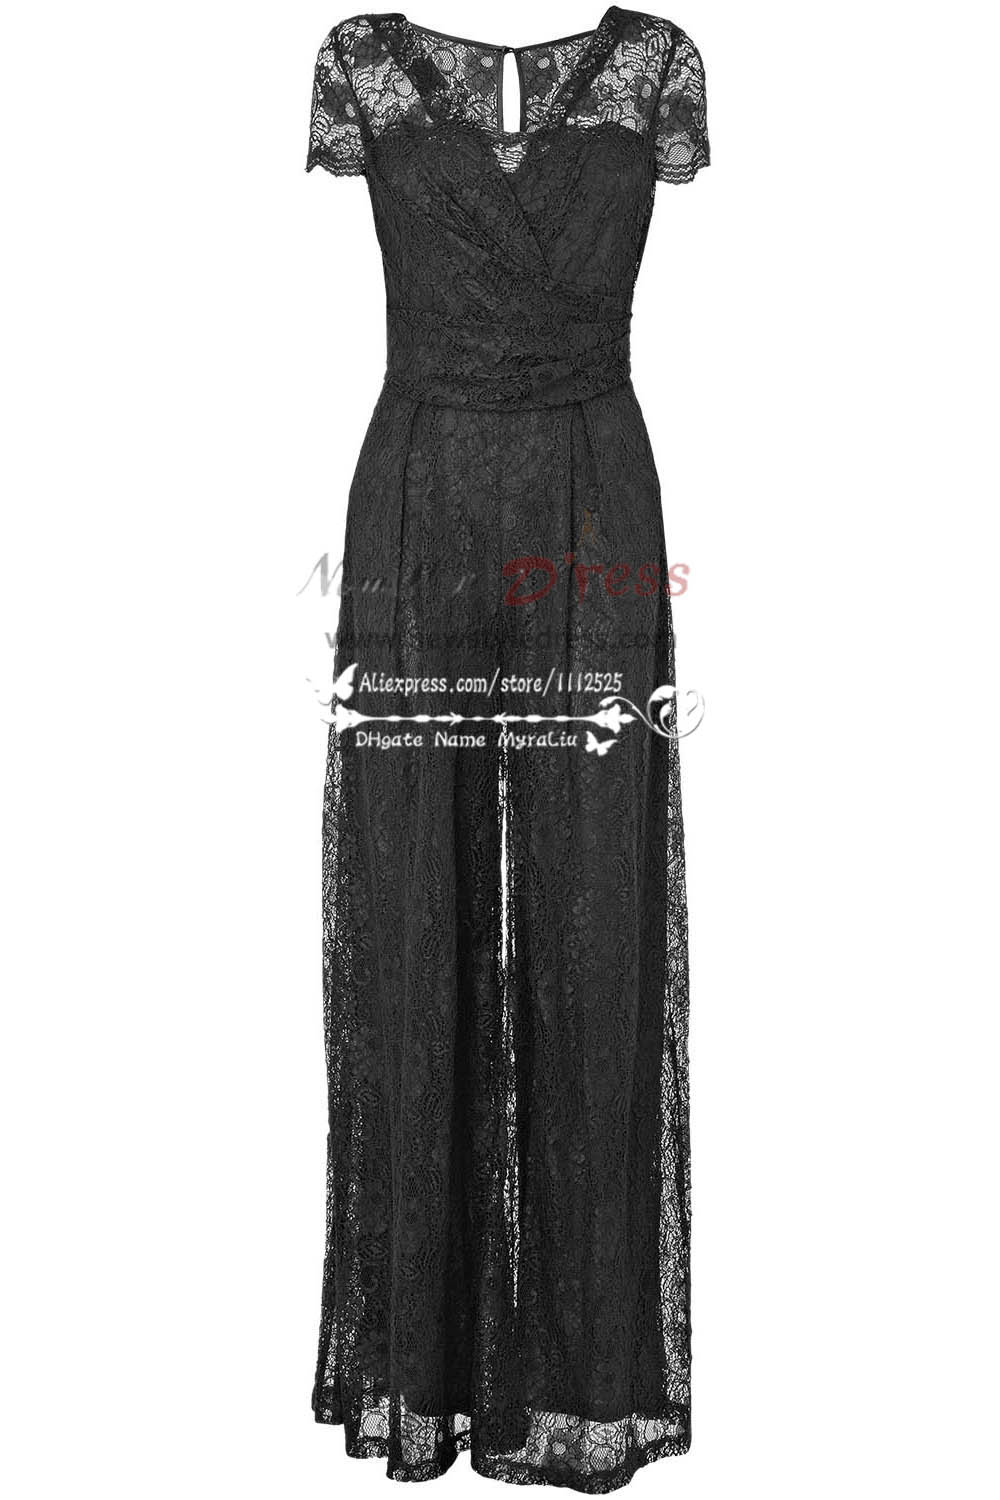 Modern sexy black Prom Jumpsuit dress with lace nmo228  Mother Of The Bride Pantsuits